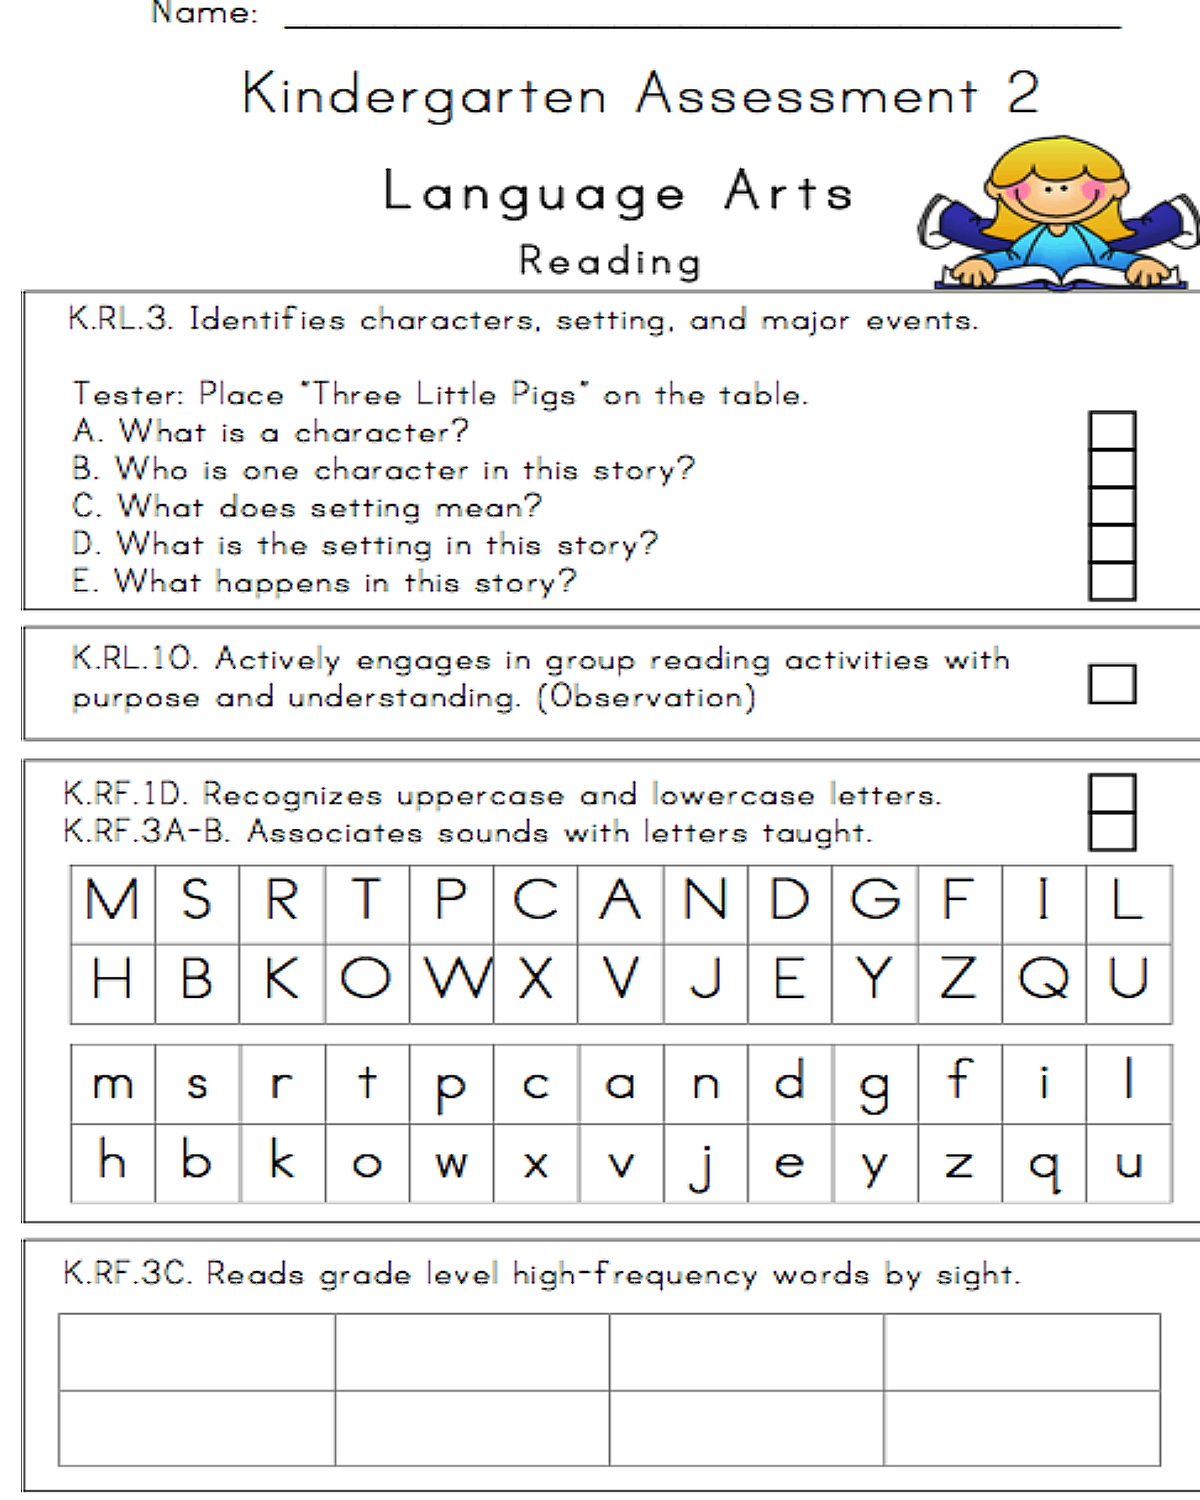 24 Page Illustrated Kindergarten Assessment